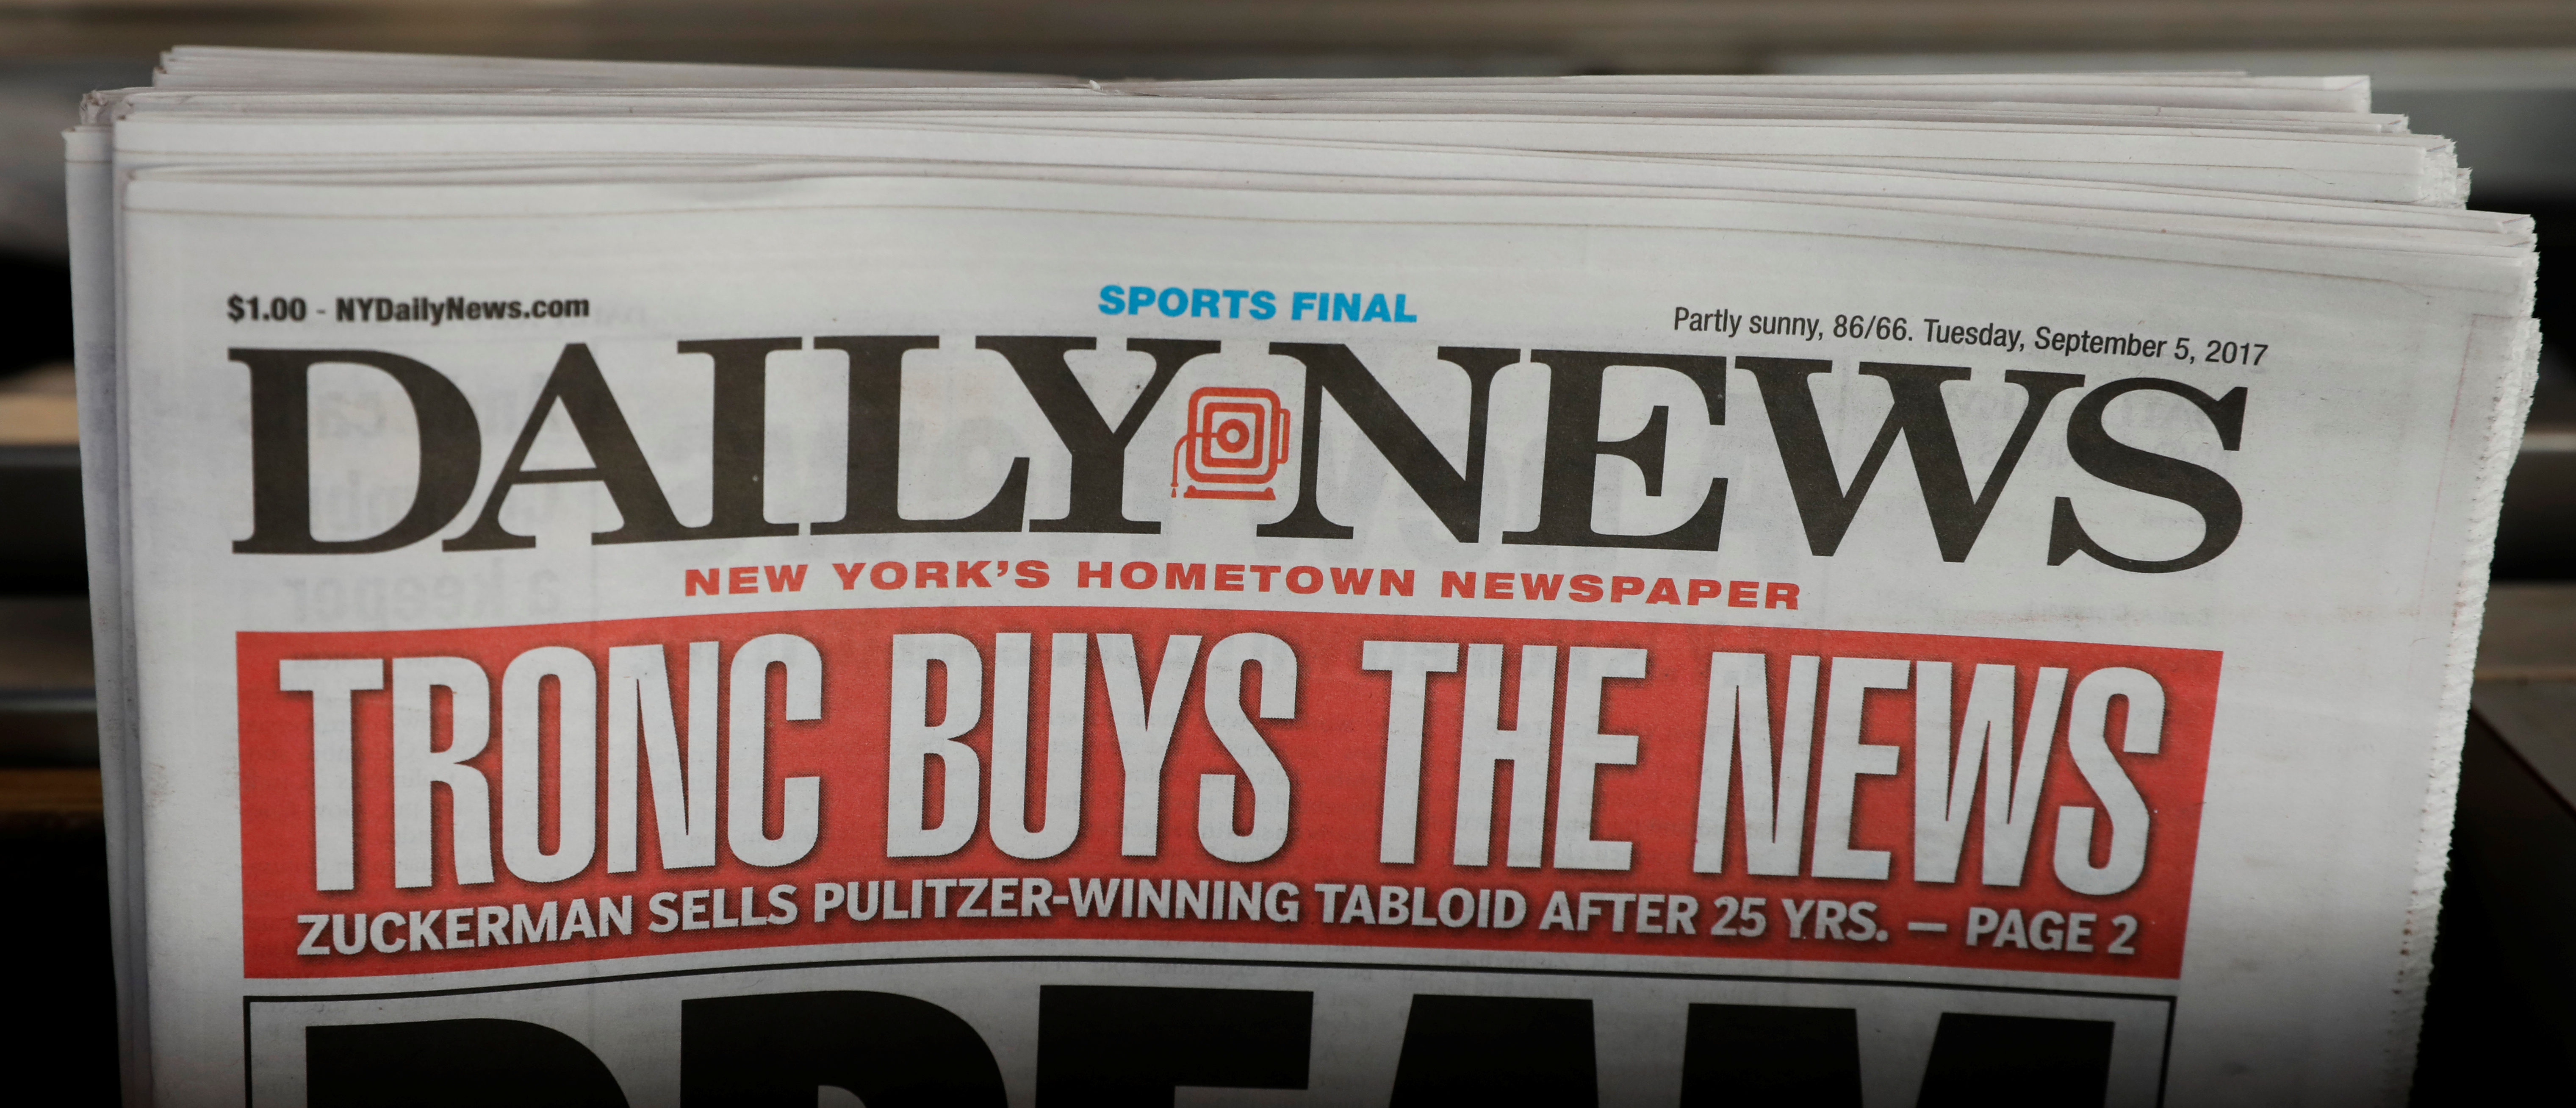 """A New York Daily News with the headline """"TRONC BUYS THE NEWS"""" is seen on a newsstand in New York City, U.S., September 5, 2017. REUTERS/Brendan McDermid - RC171109D620"""